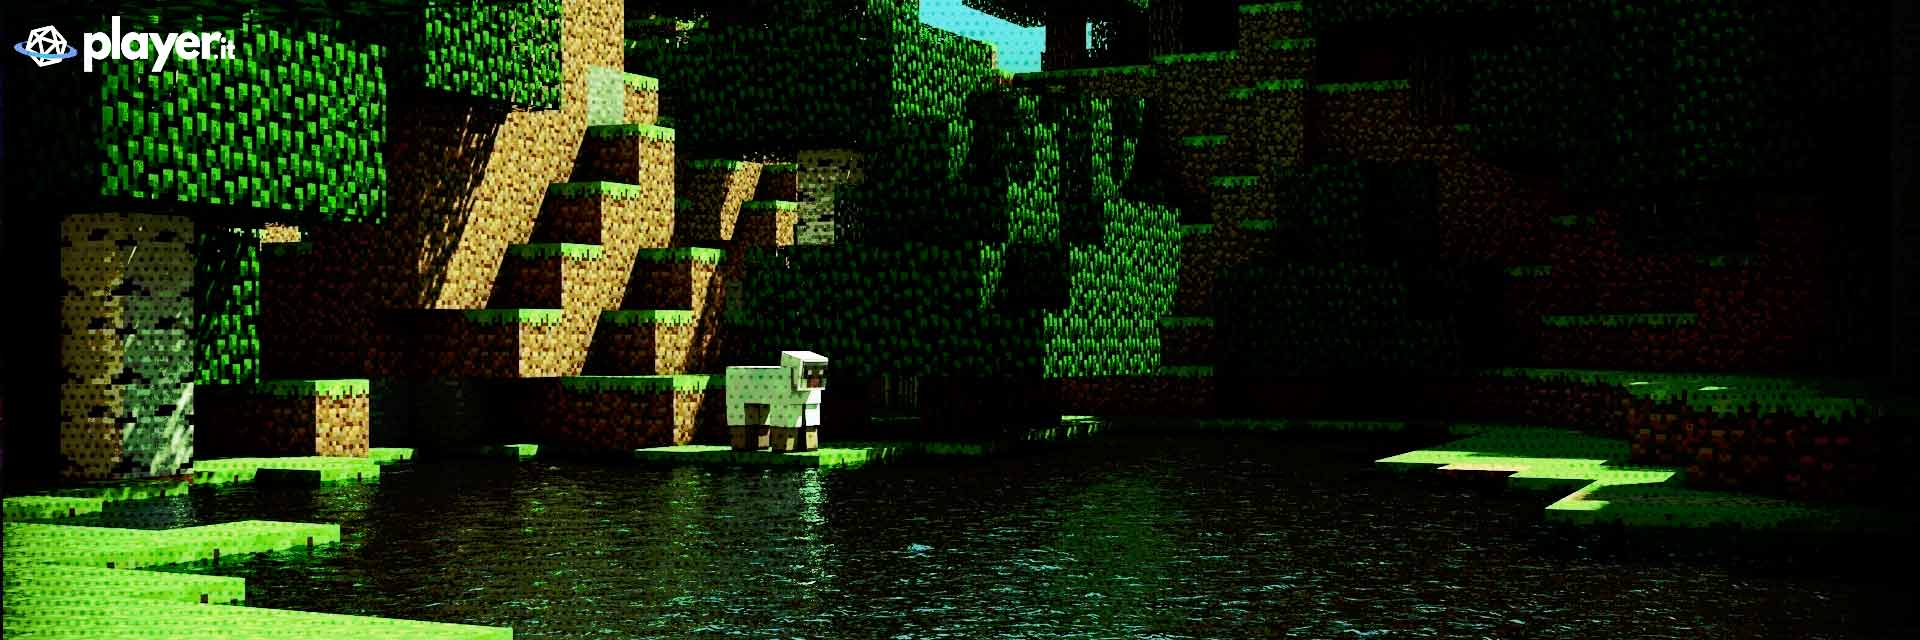 minecraft wallpaper in hd